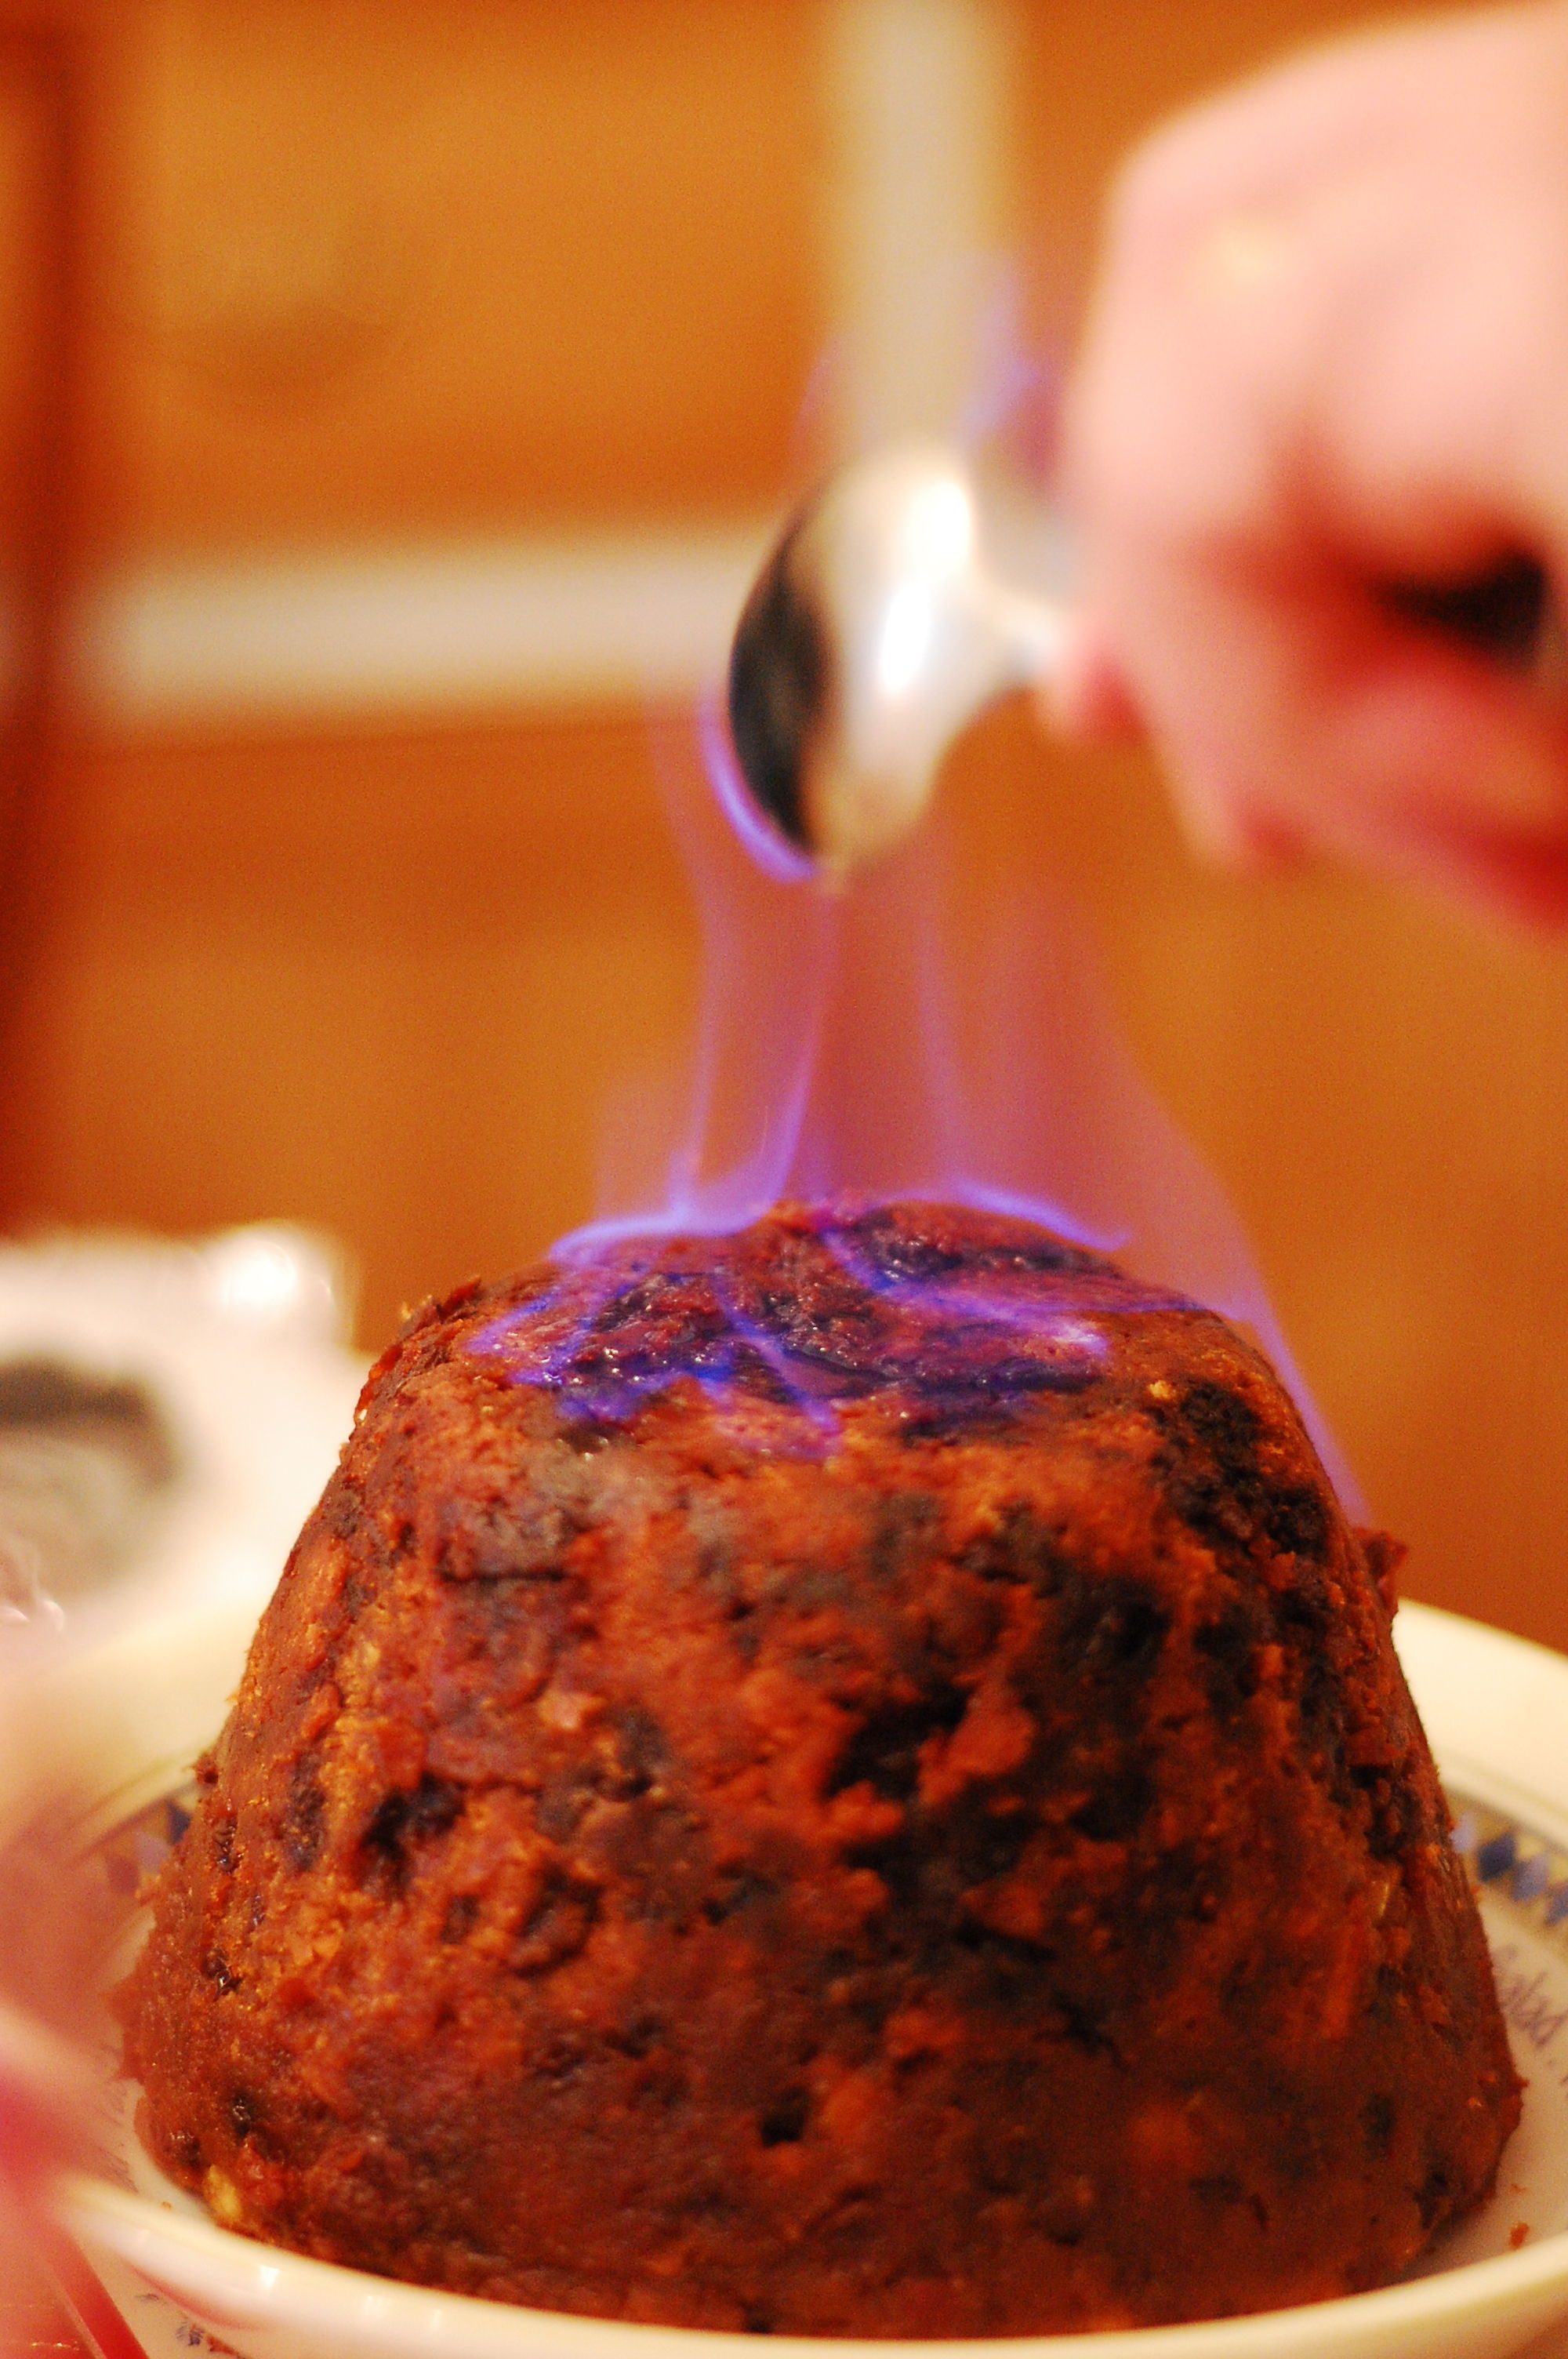 http://upload.wikimedia.org/wikipedia/commons/thumb/4/4c/Christmas_Pudding_with_Flaming_Rum.jpg/2000px-Christmas_Pudding_with_Flaming_Rum.jpg